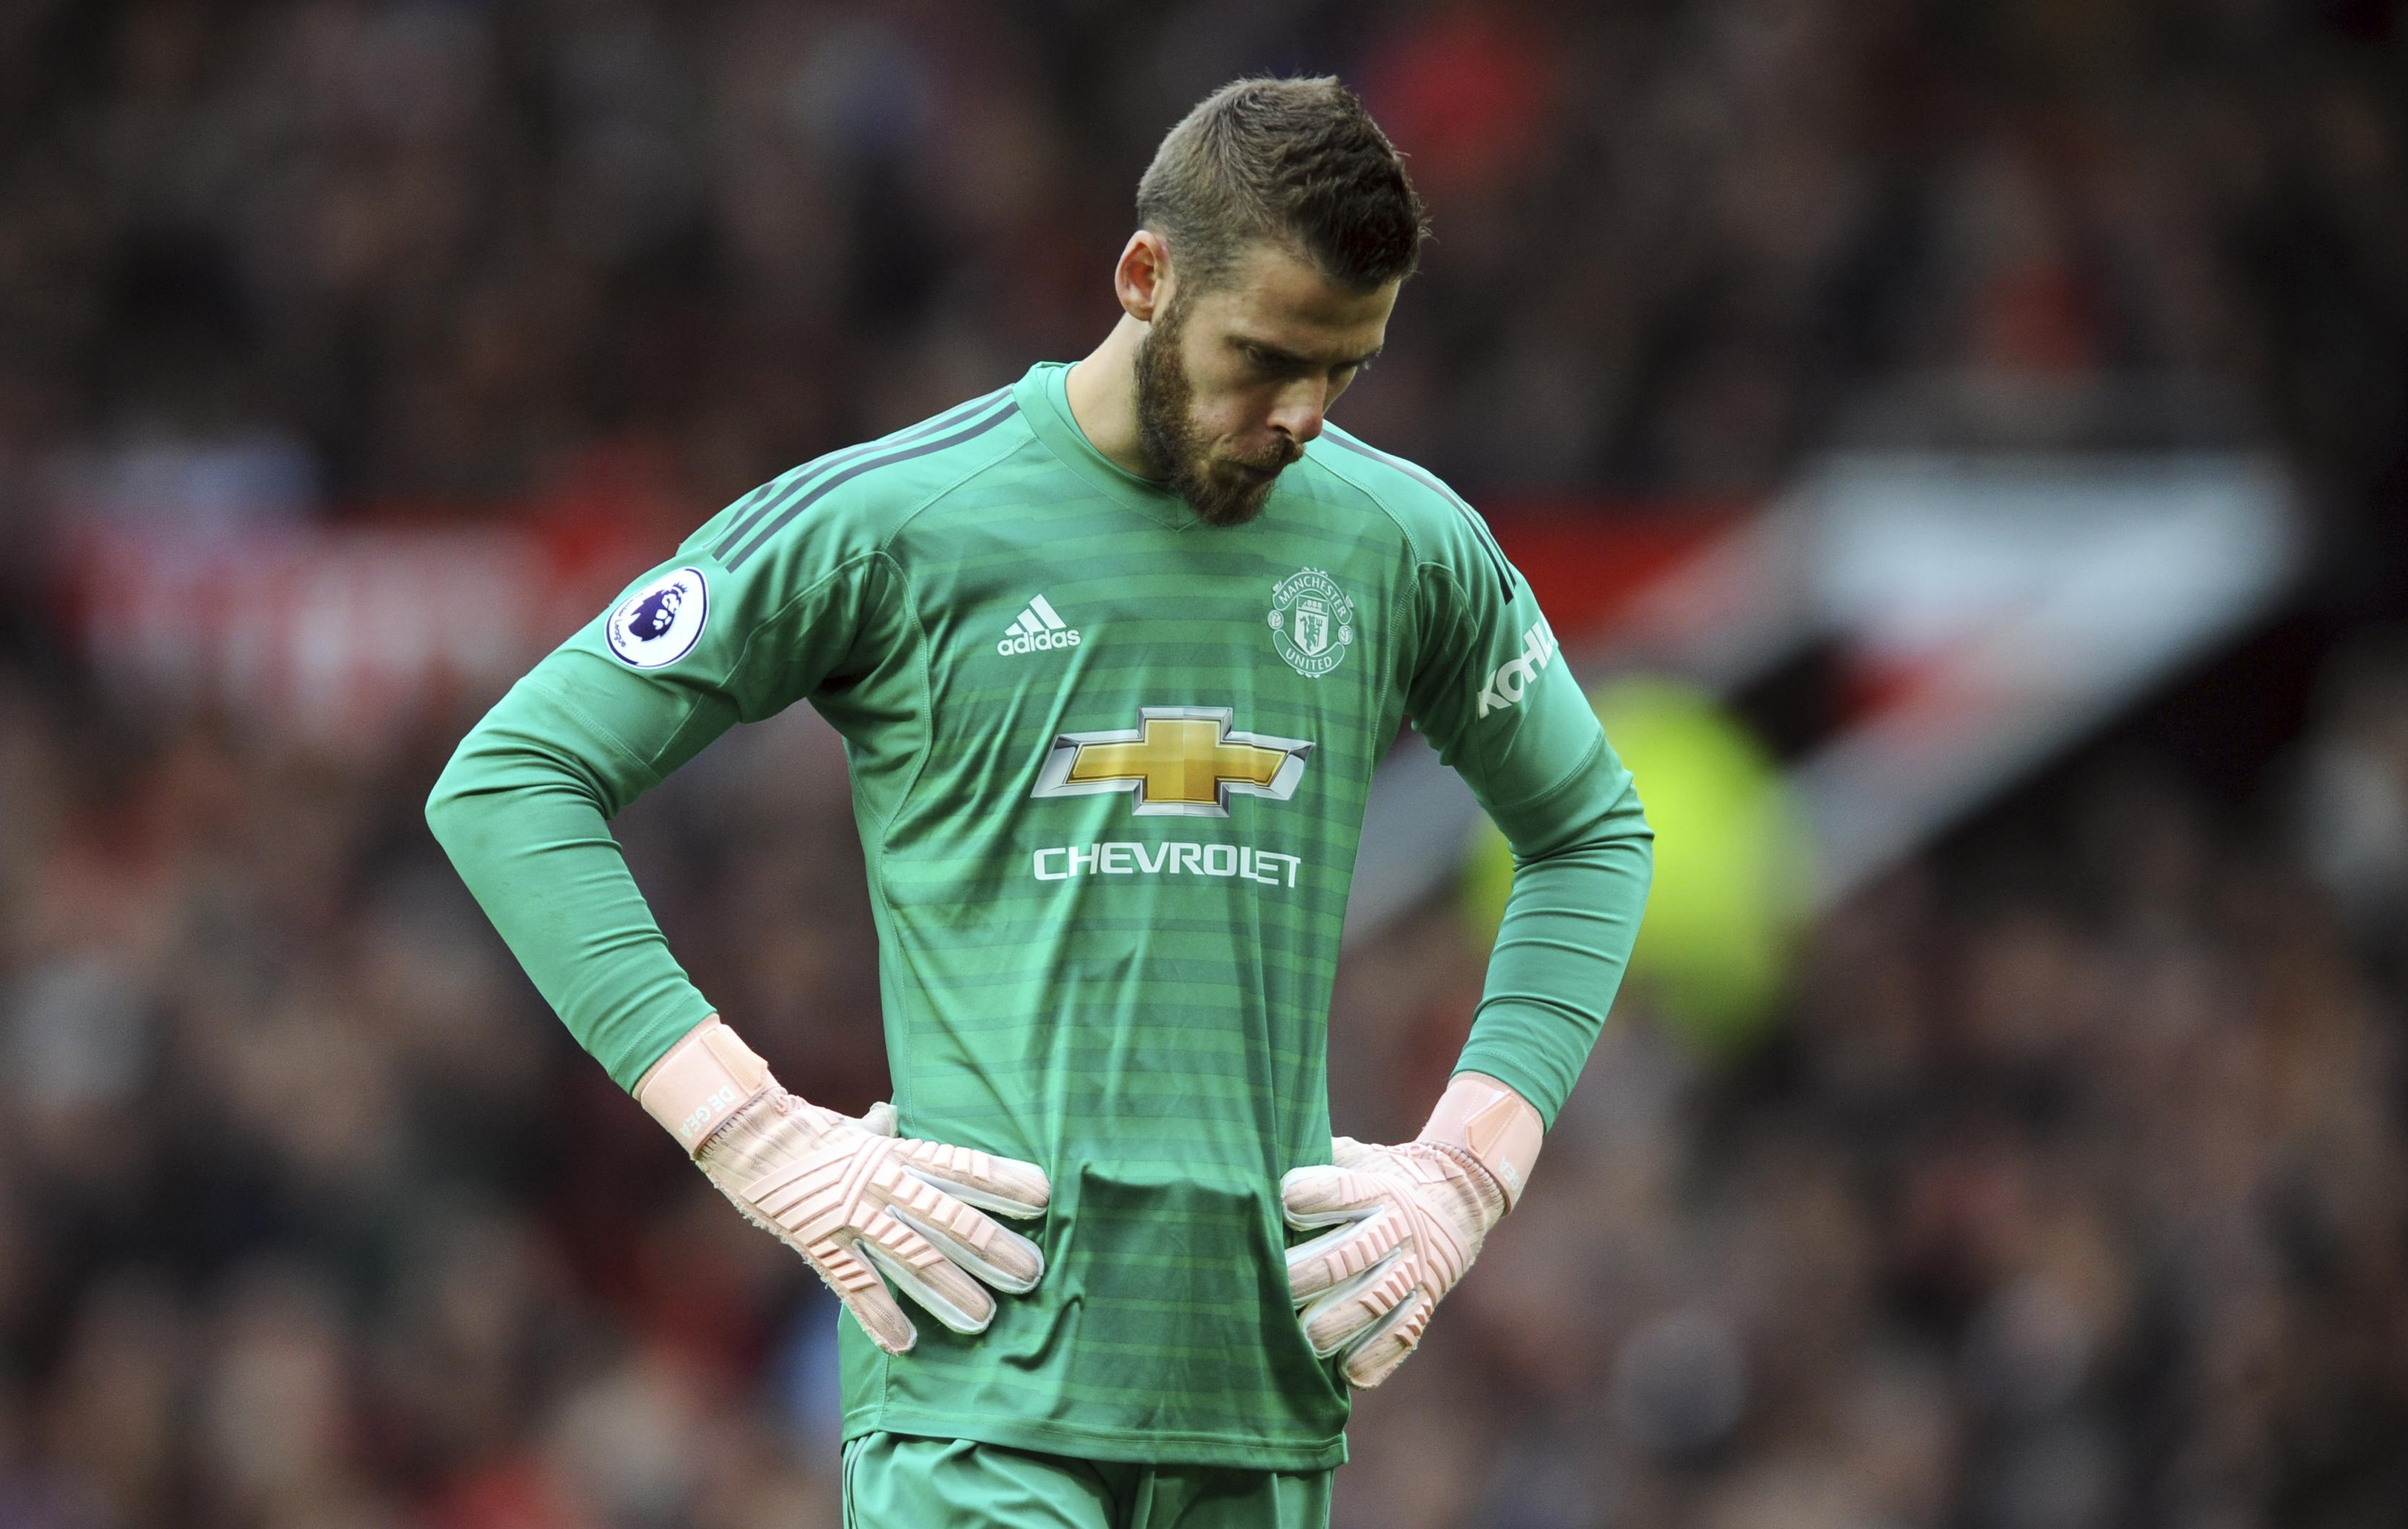 Manchester United are far too reliant on goalkeeper David De Gea